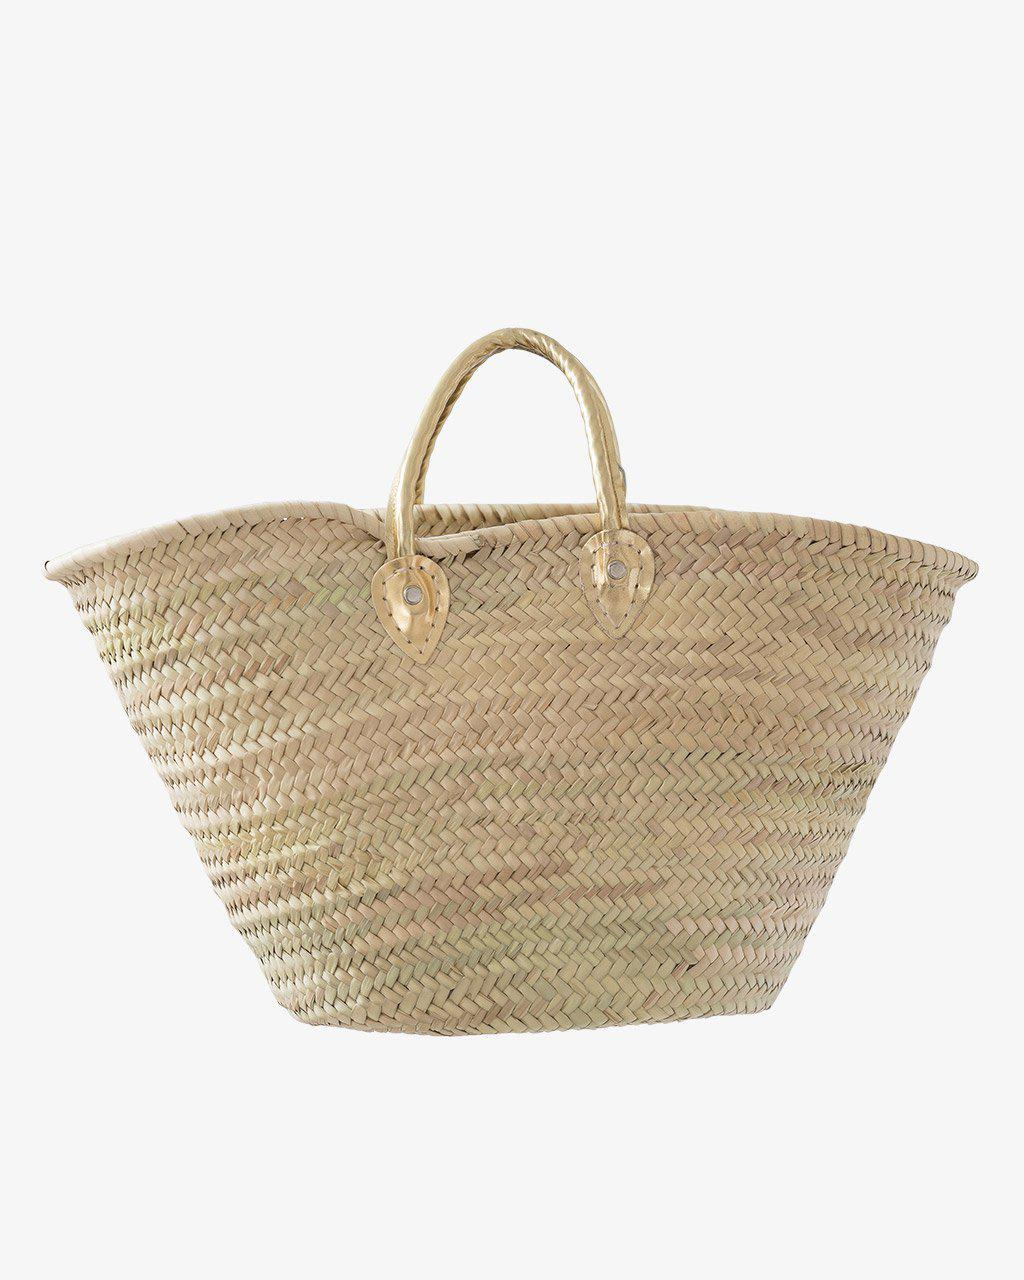 BARCELONA, Short Leather Handle, Gold-French Basket-Indigo+Lavender